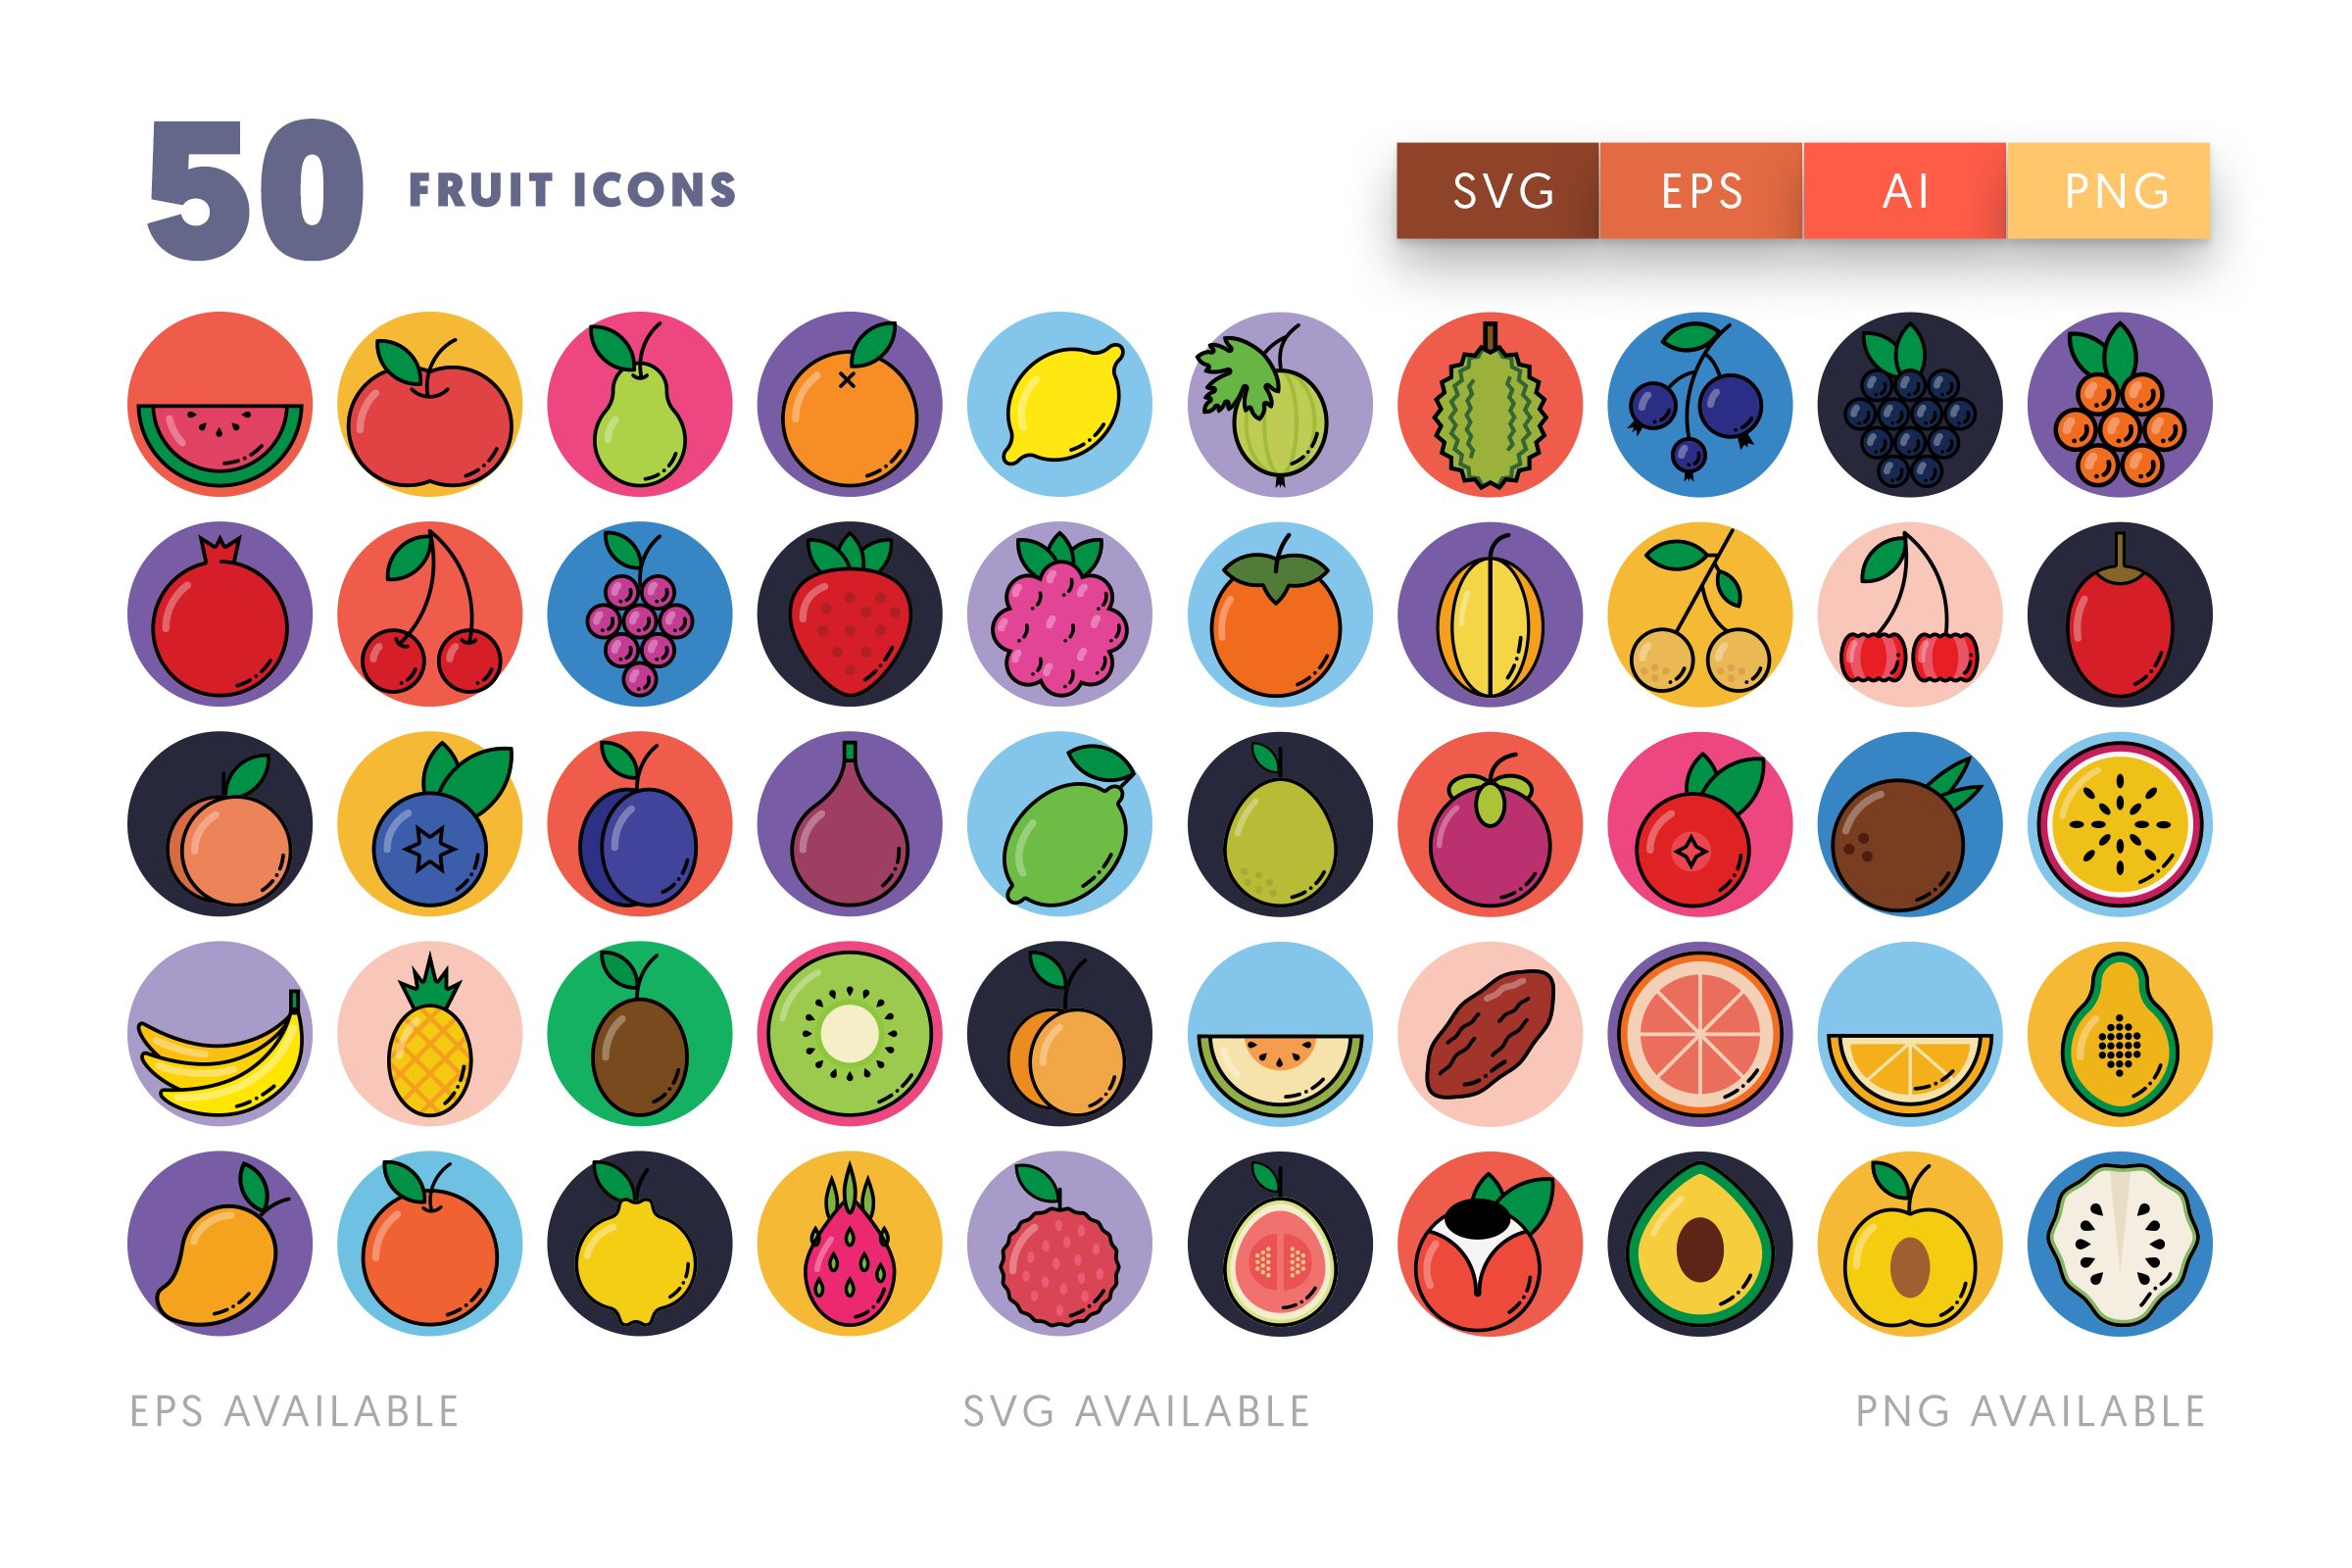 Fruit icons png/svg/eps